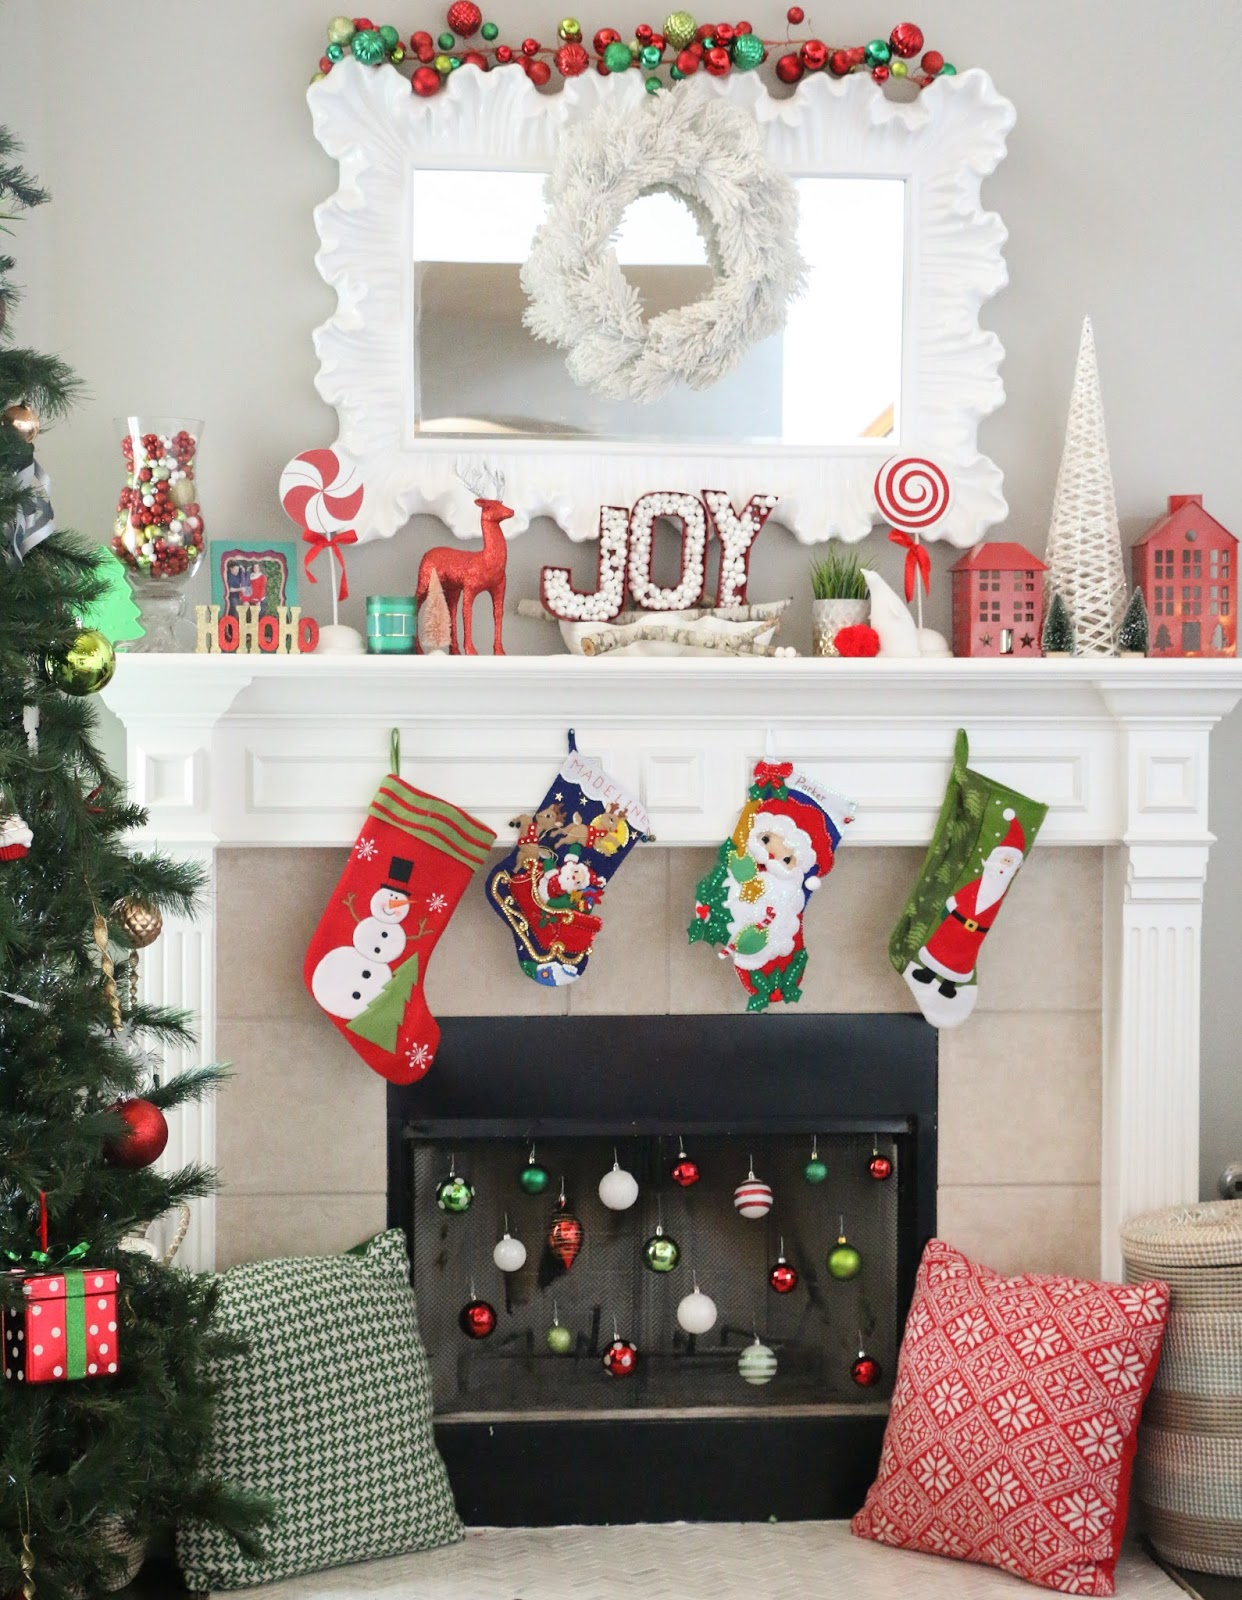 Christmas Home Tour Part 19 - The Living Room and Kitchen - A Kailo ...